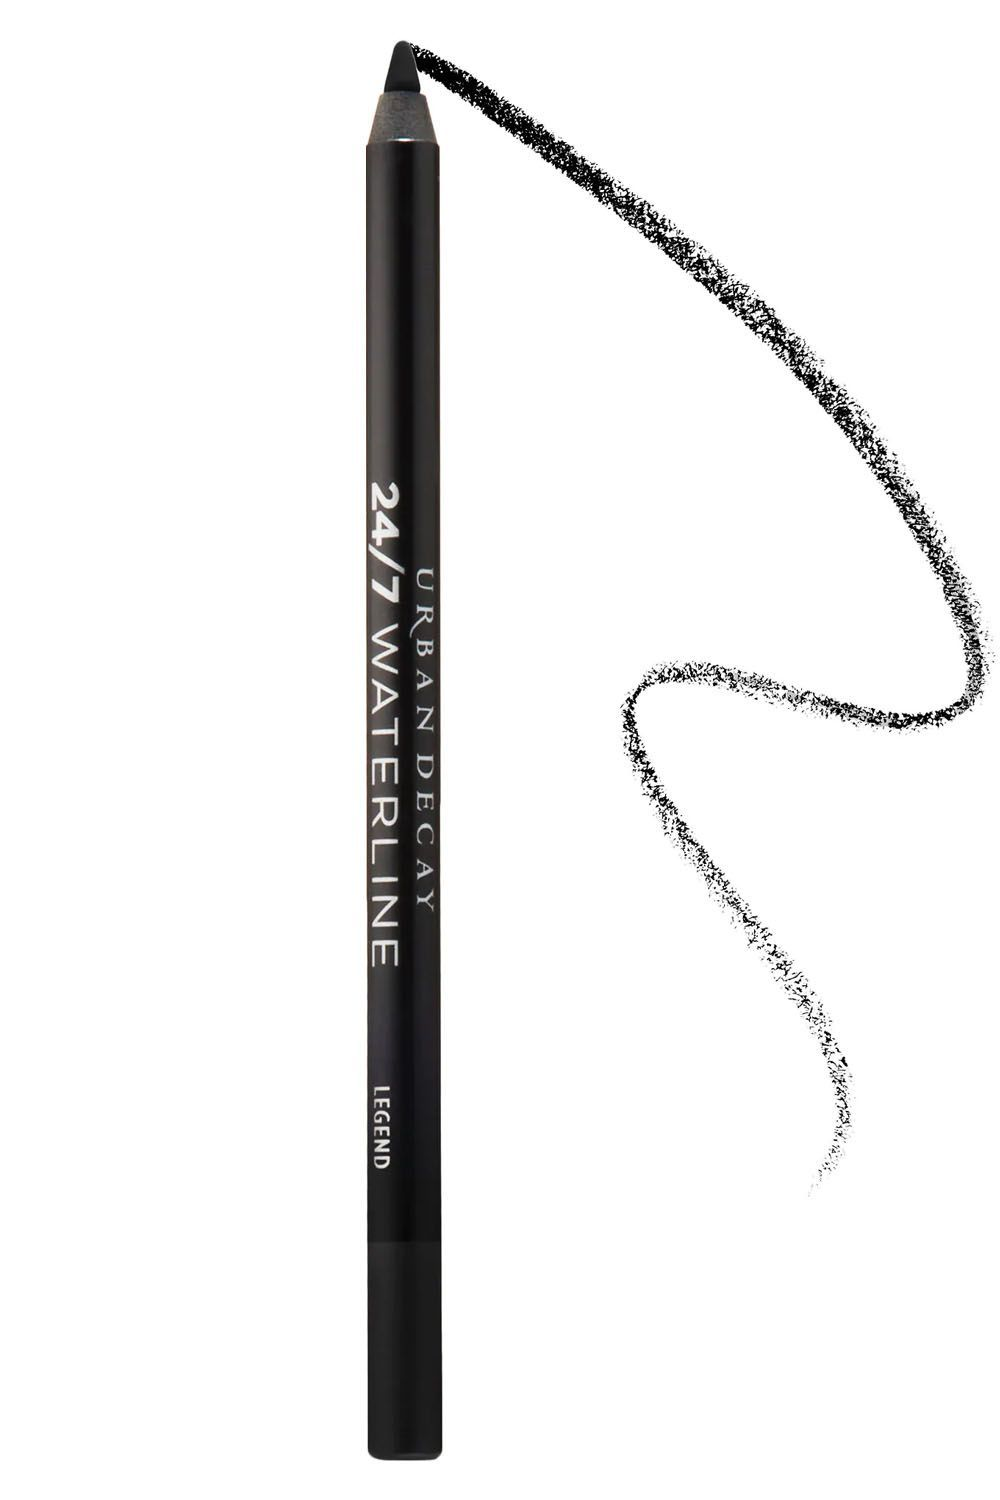 10 Best Eyeliners For Waterlines That